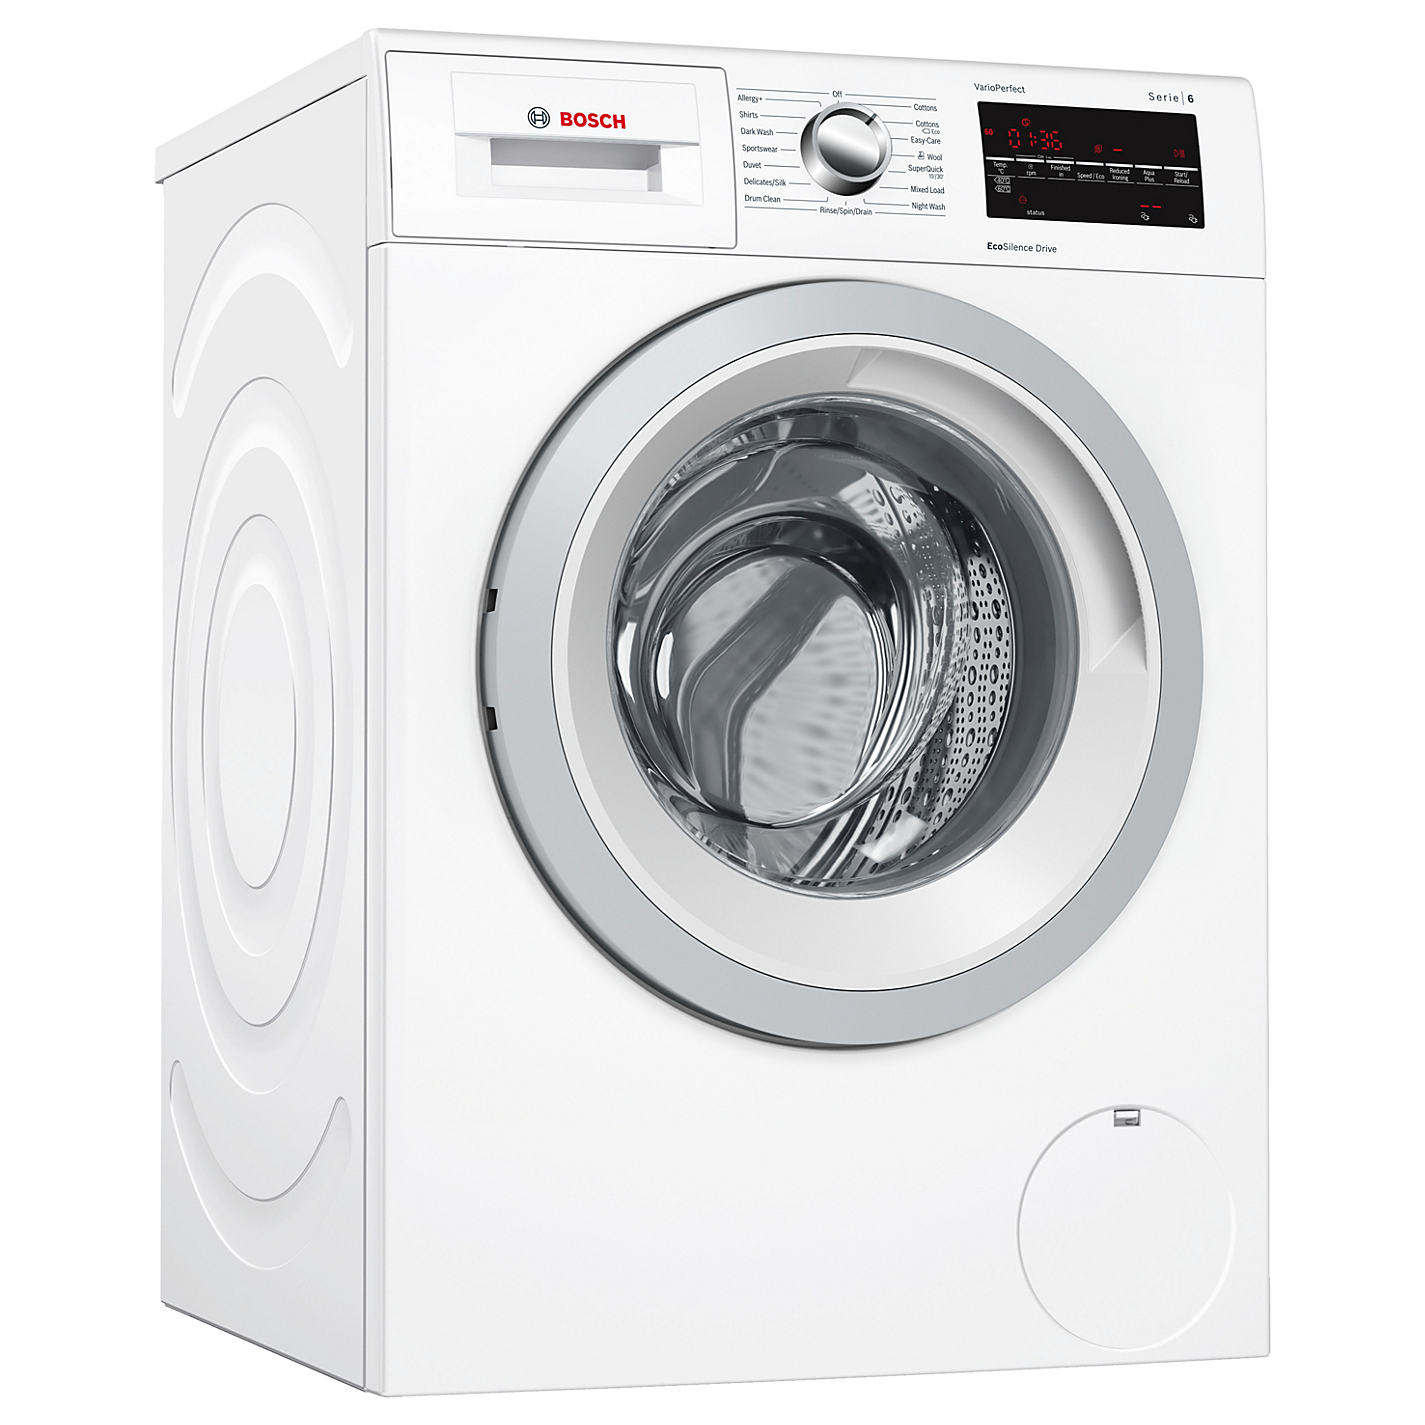 Bosch Wat28421gb Freestanding Washing Machine 8kg Load A Energy Rating 1400rpm Spin